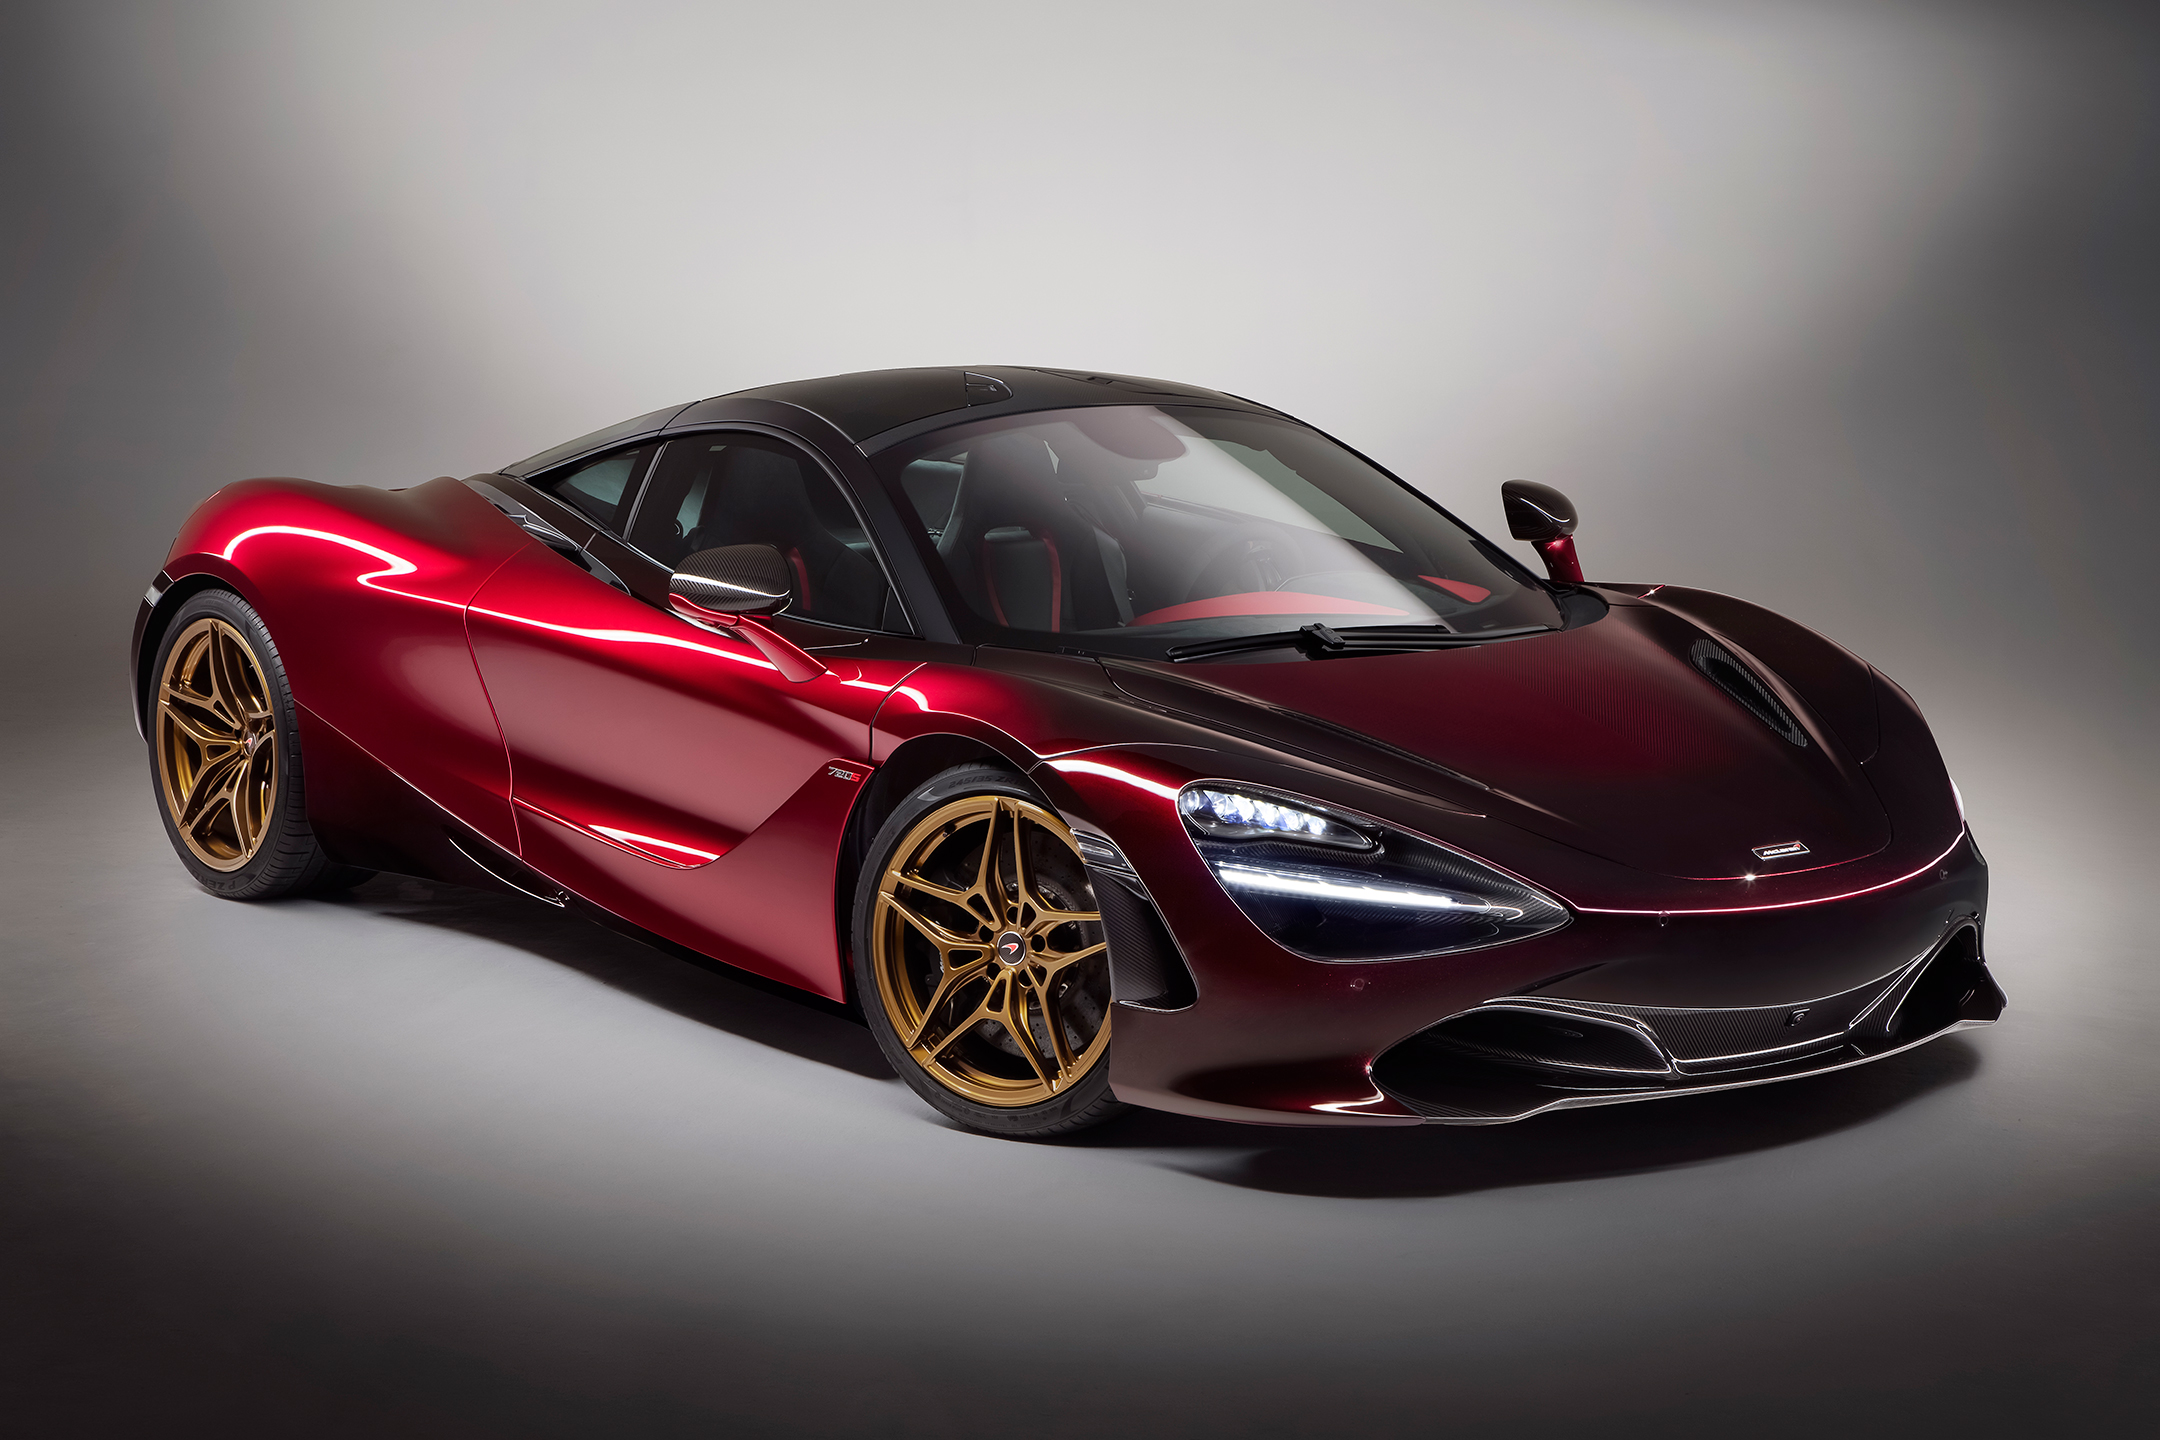 McLaren 720S MSO Velocity - 2017 - front side-face / profil avant - Red